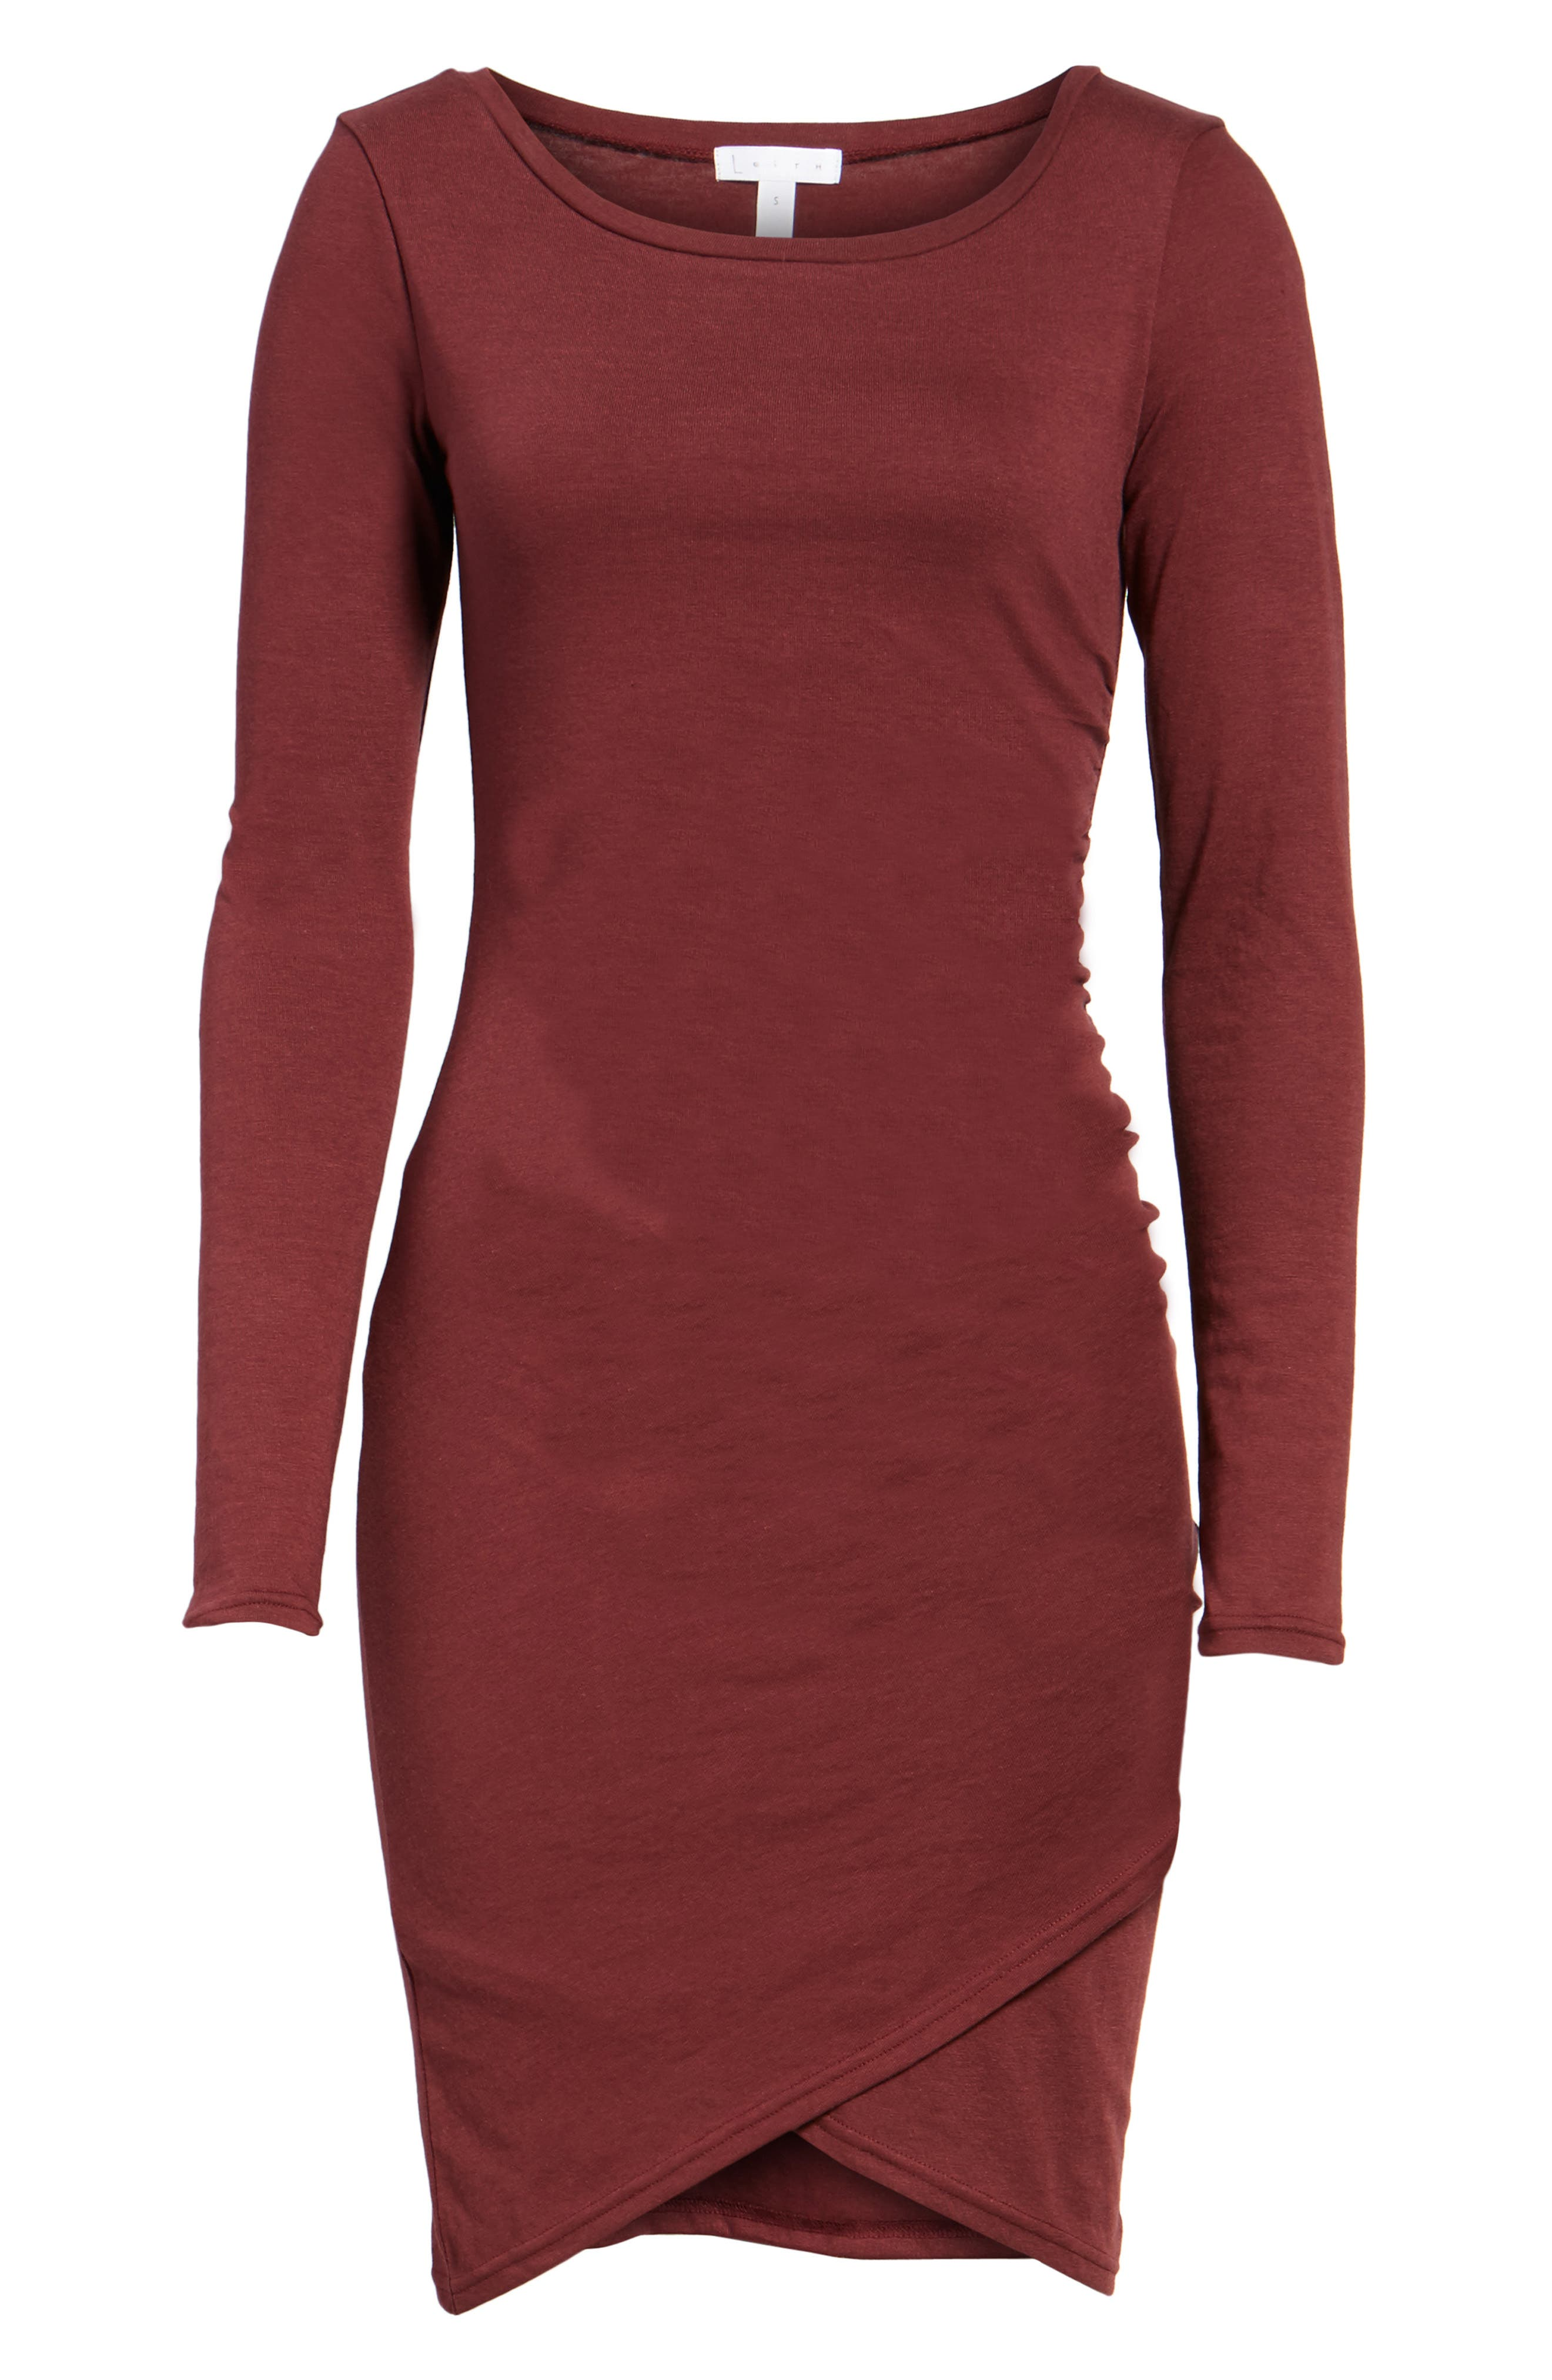 Ruched Long Sleeve Dress,                             Alternate thumbnail 6, color,                             Red Tannin